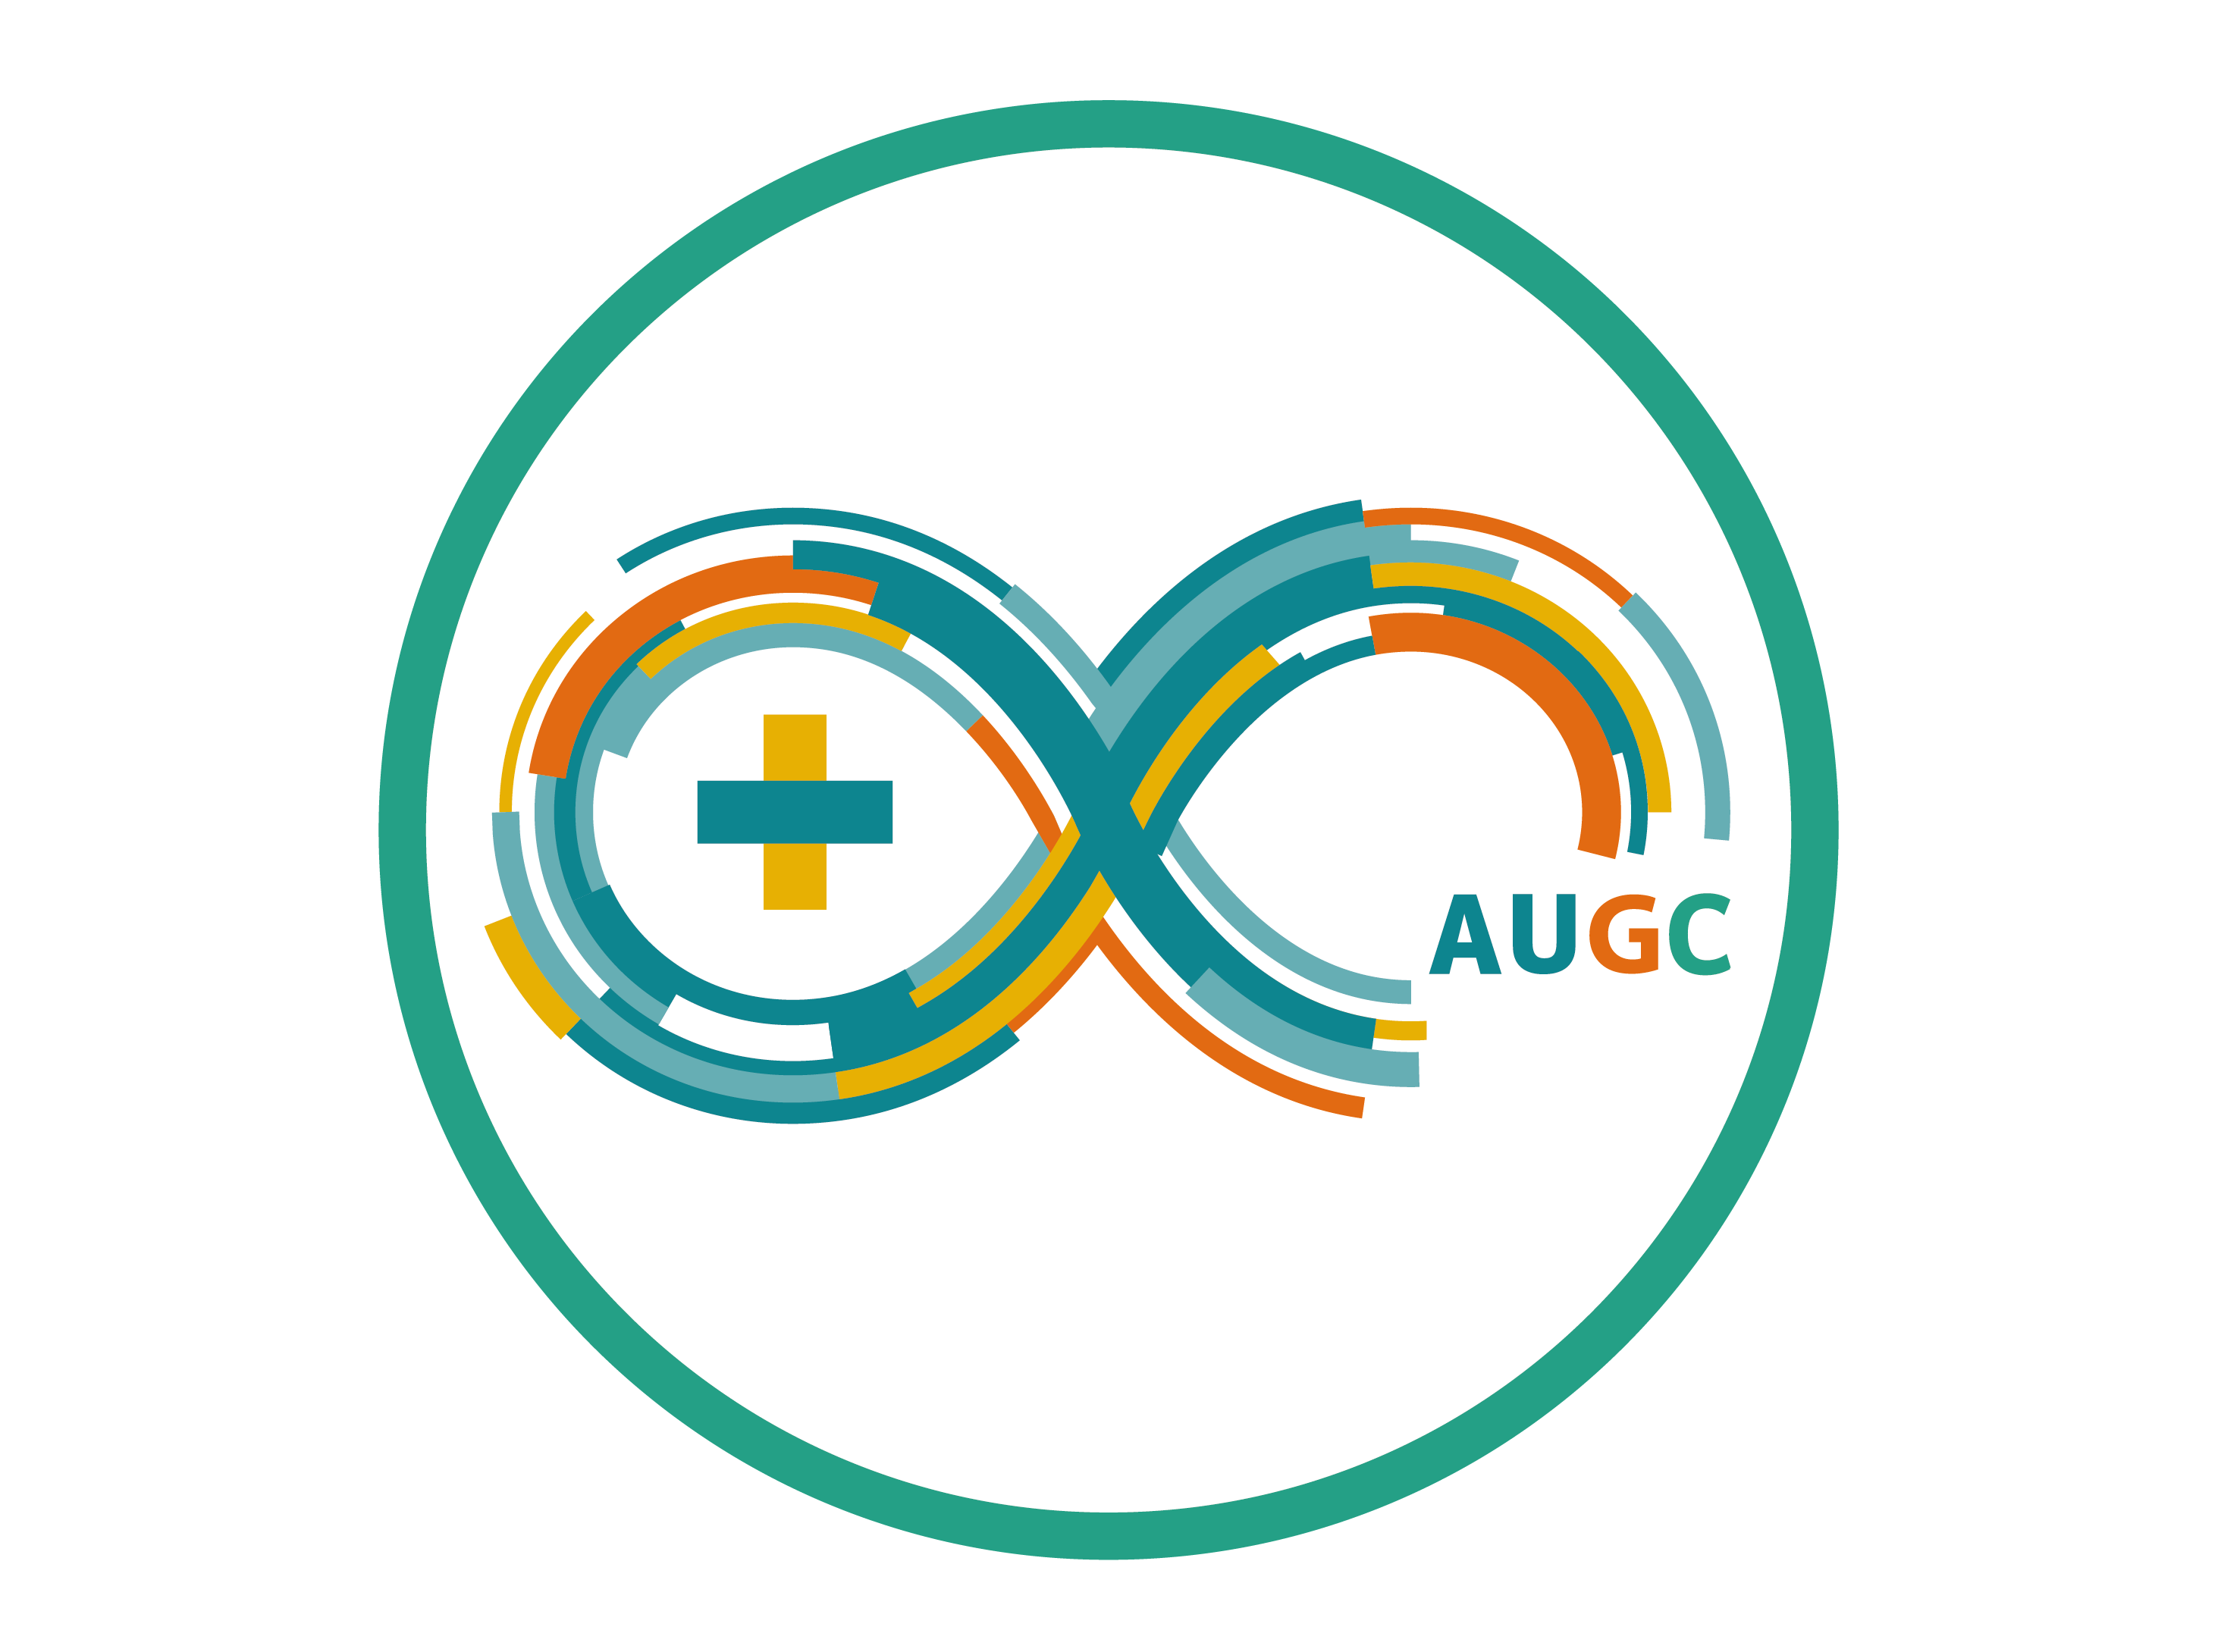 AUGC - Arduino User Group Cagliari